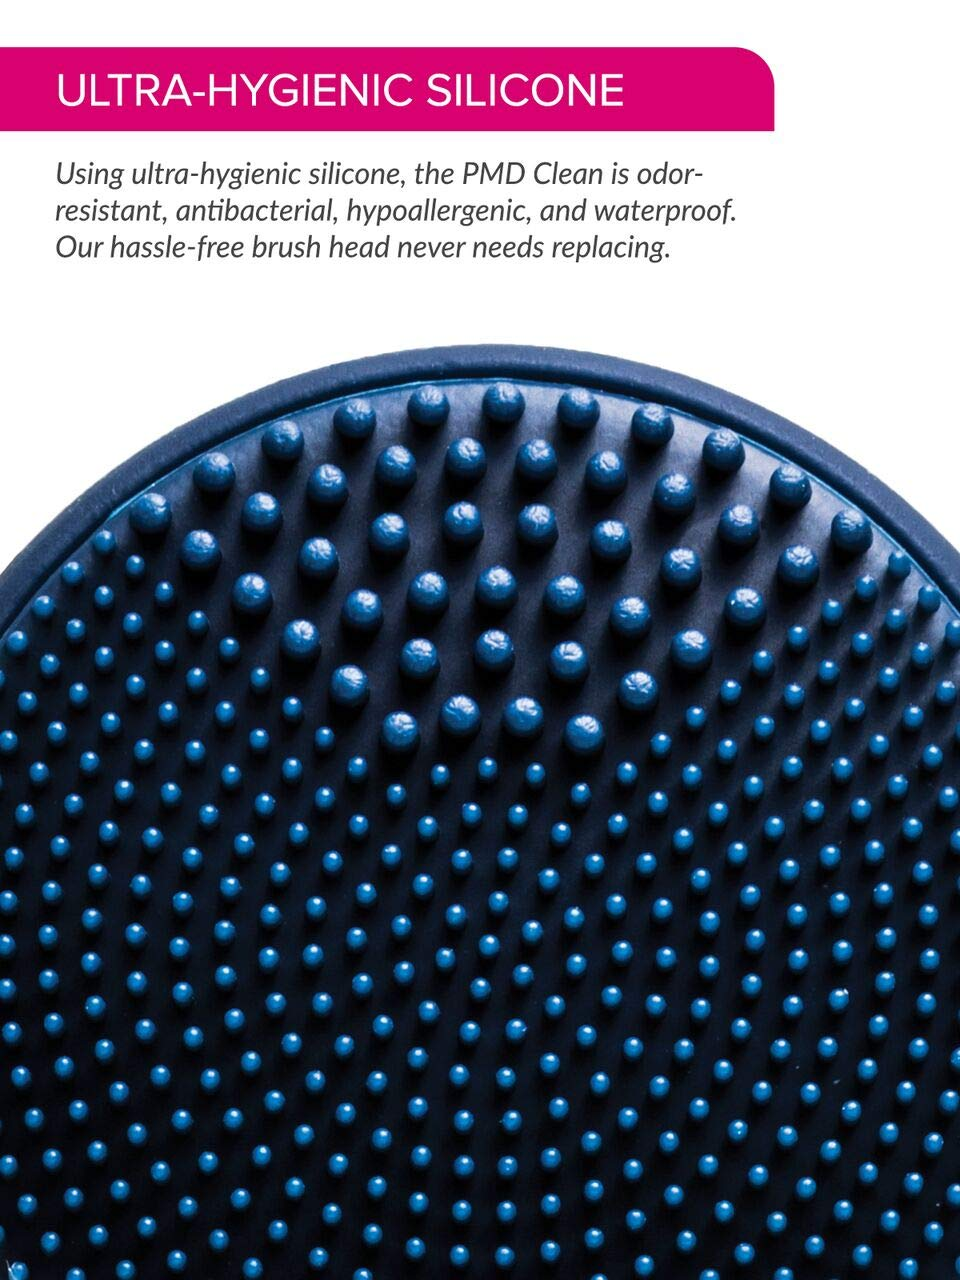 PMD Clean | Smart Facial Cleansing Brush and Face Massager Device for Youthful Skin | Navy with Gold by PMD Personal Microderm (Image #6)